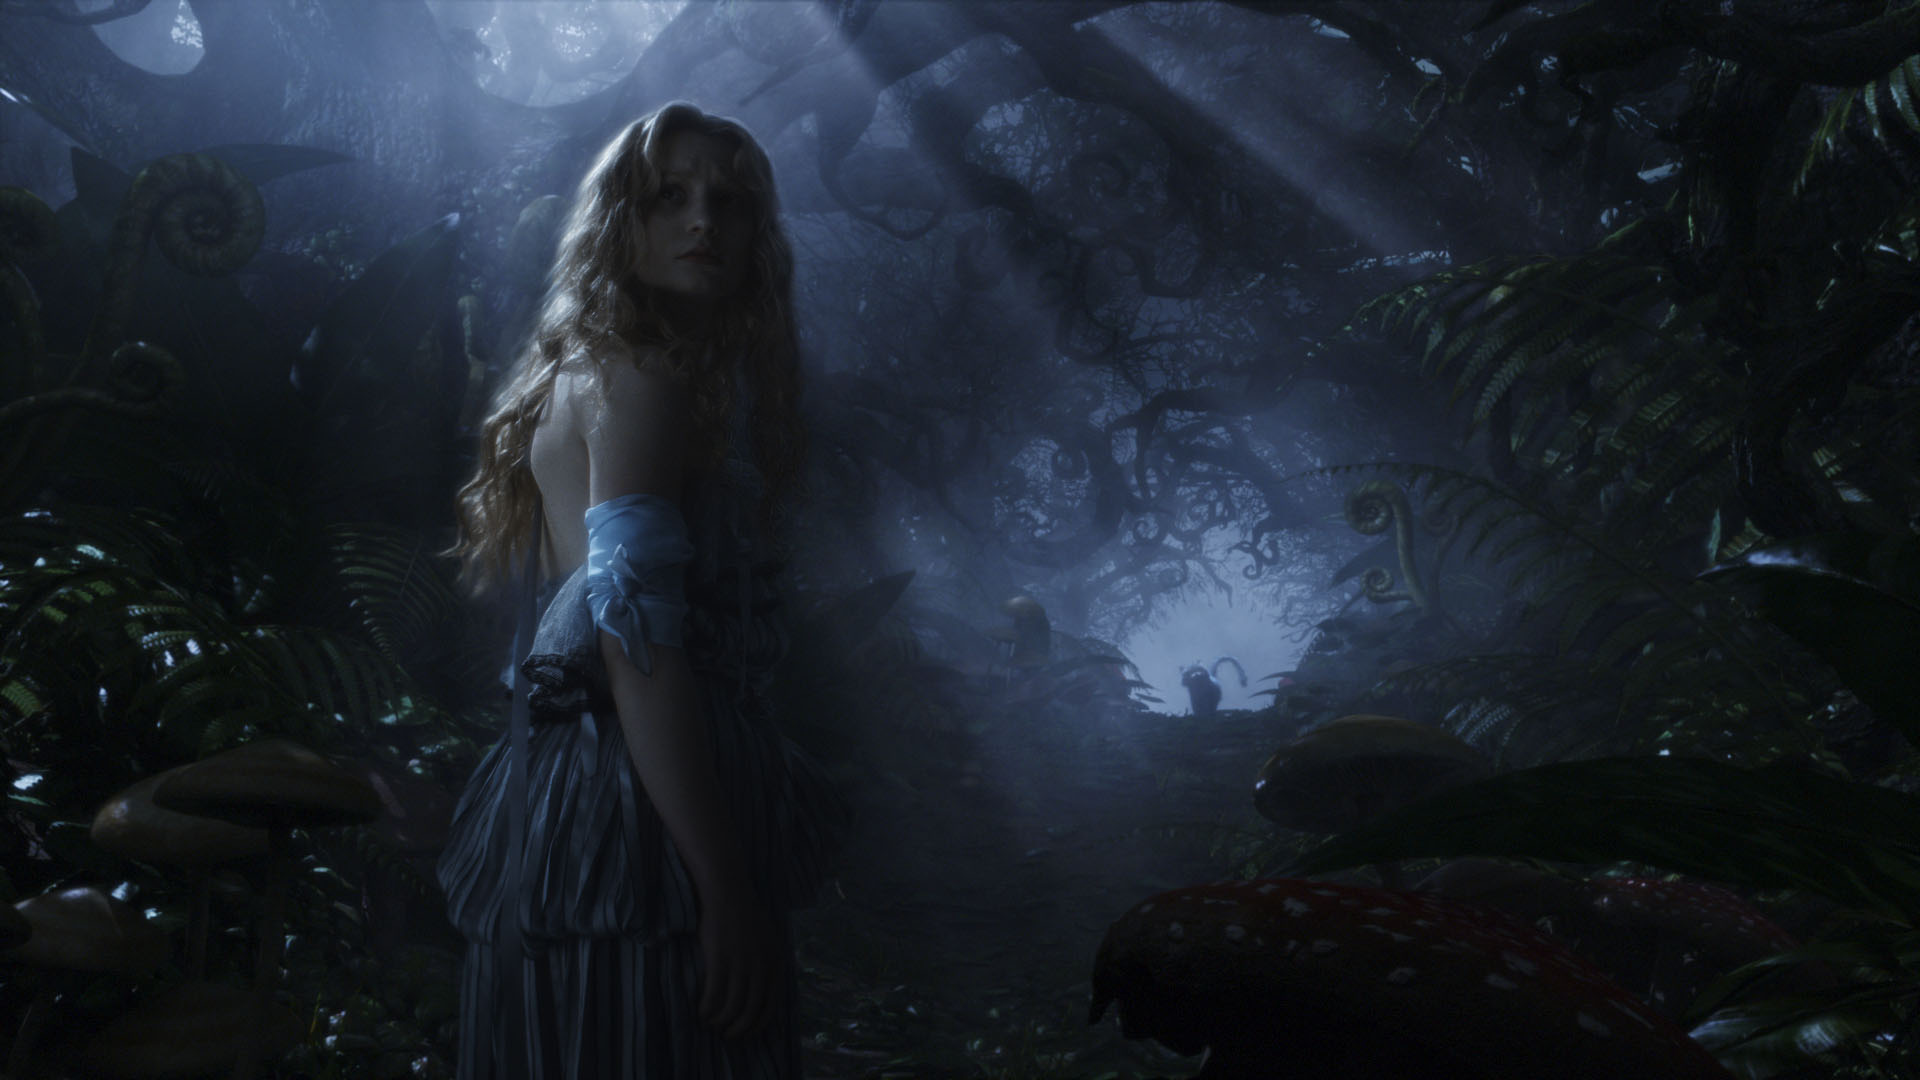 mia-wasikowska-alice-in-wonderland